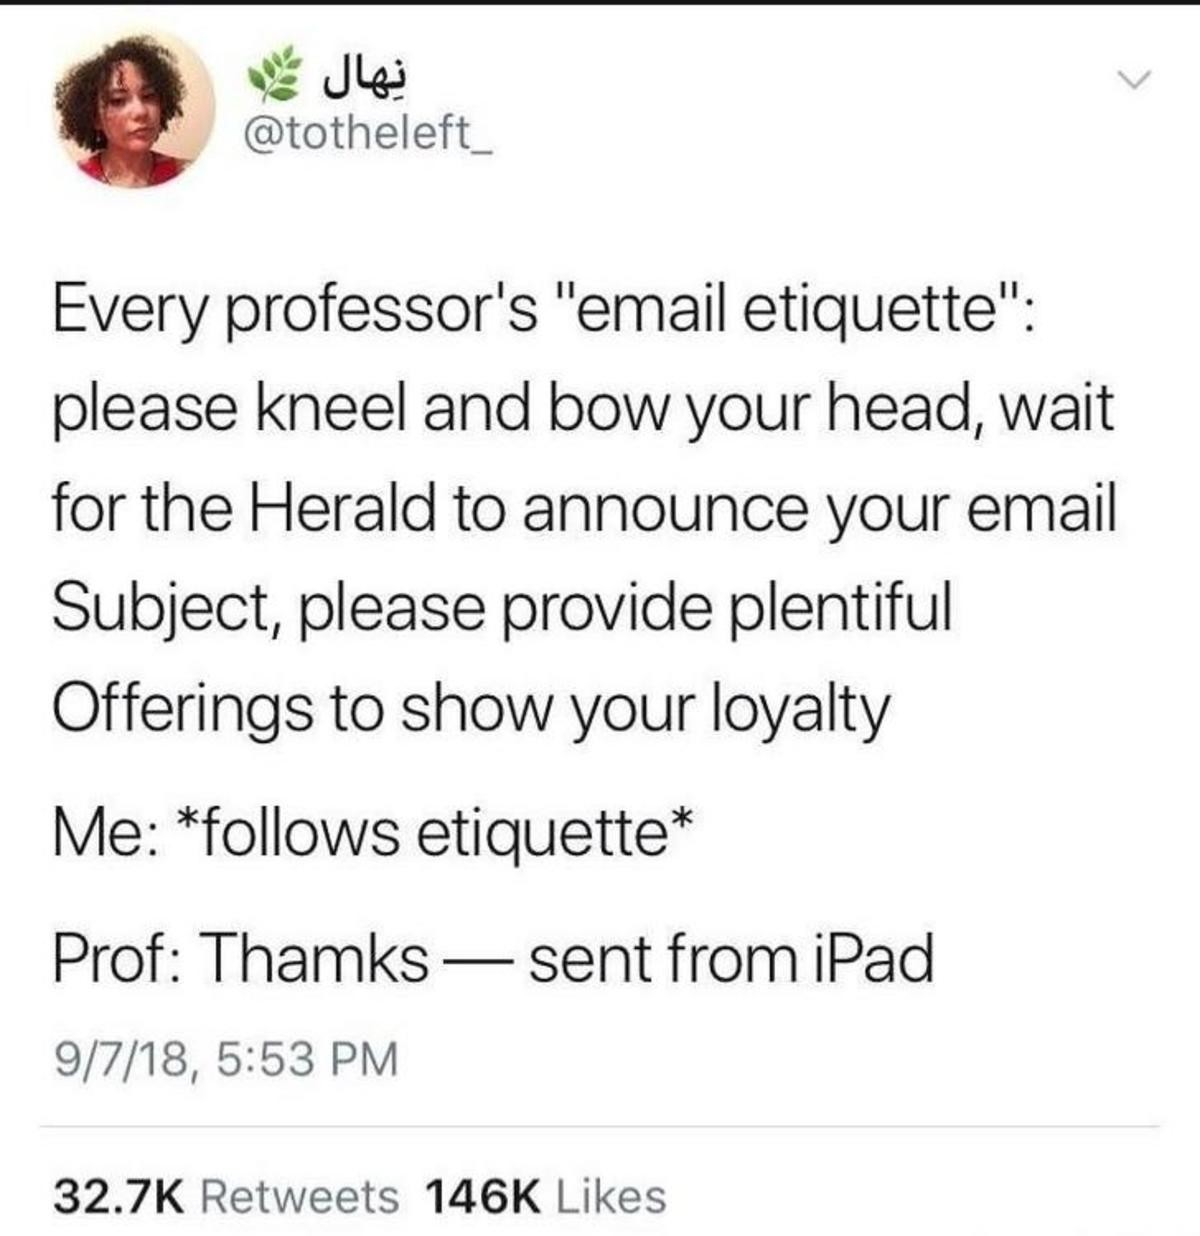 prof. .. I once had a professor take 5% off my final grade in the class because I once emailed him and accidentally had an extra e in my last name. Can't complain though